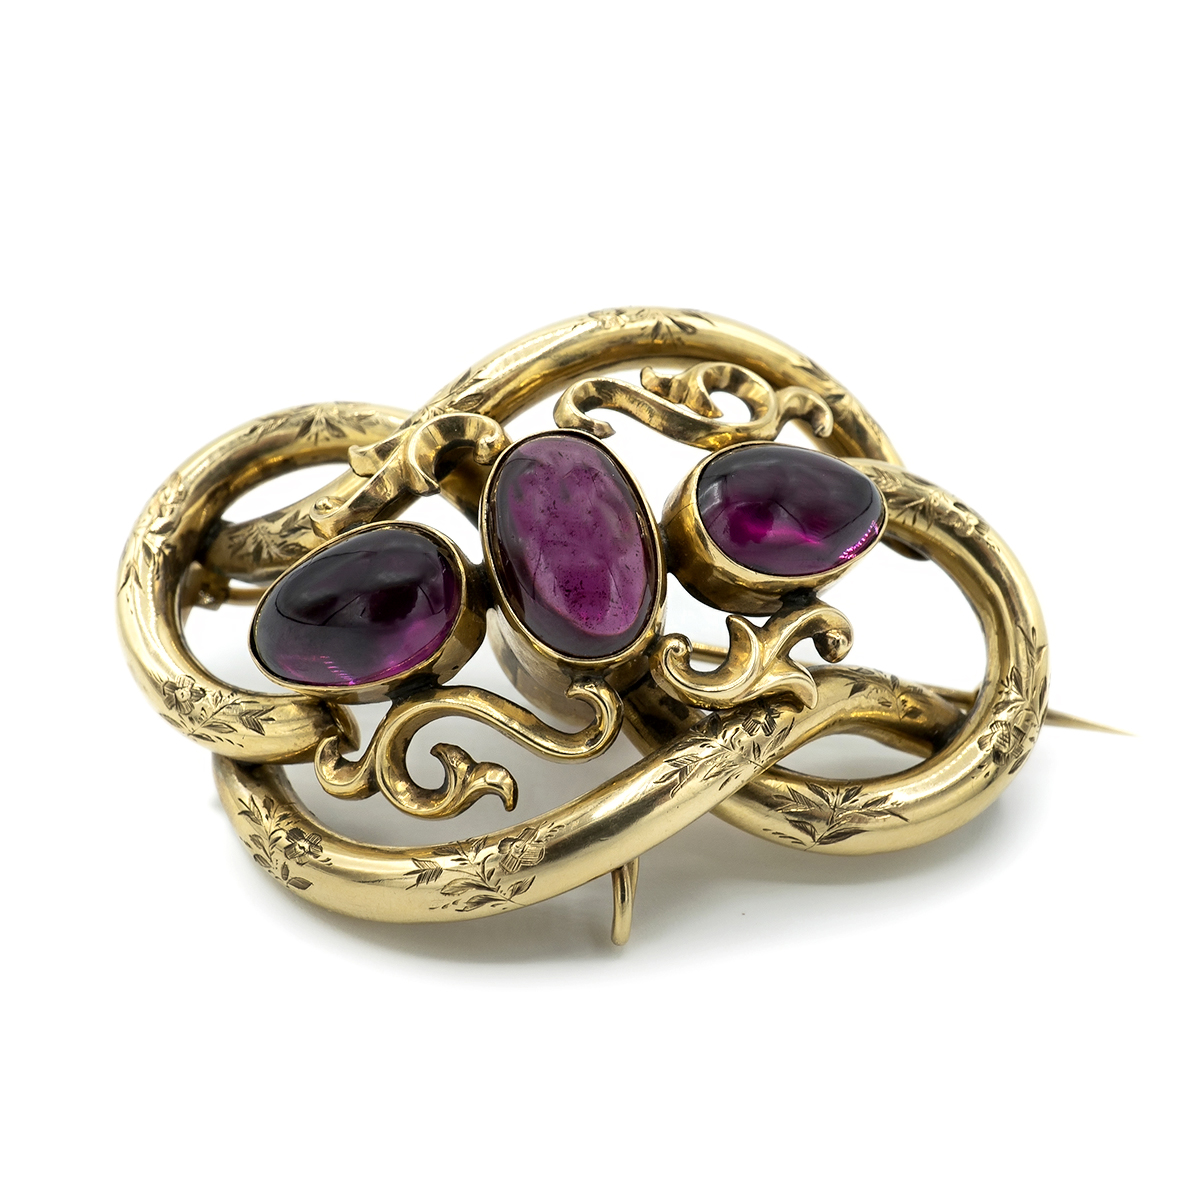 Big Brooch Of Gold And Garnets. H.1860.